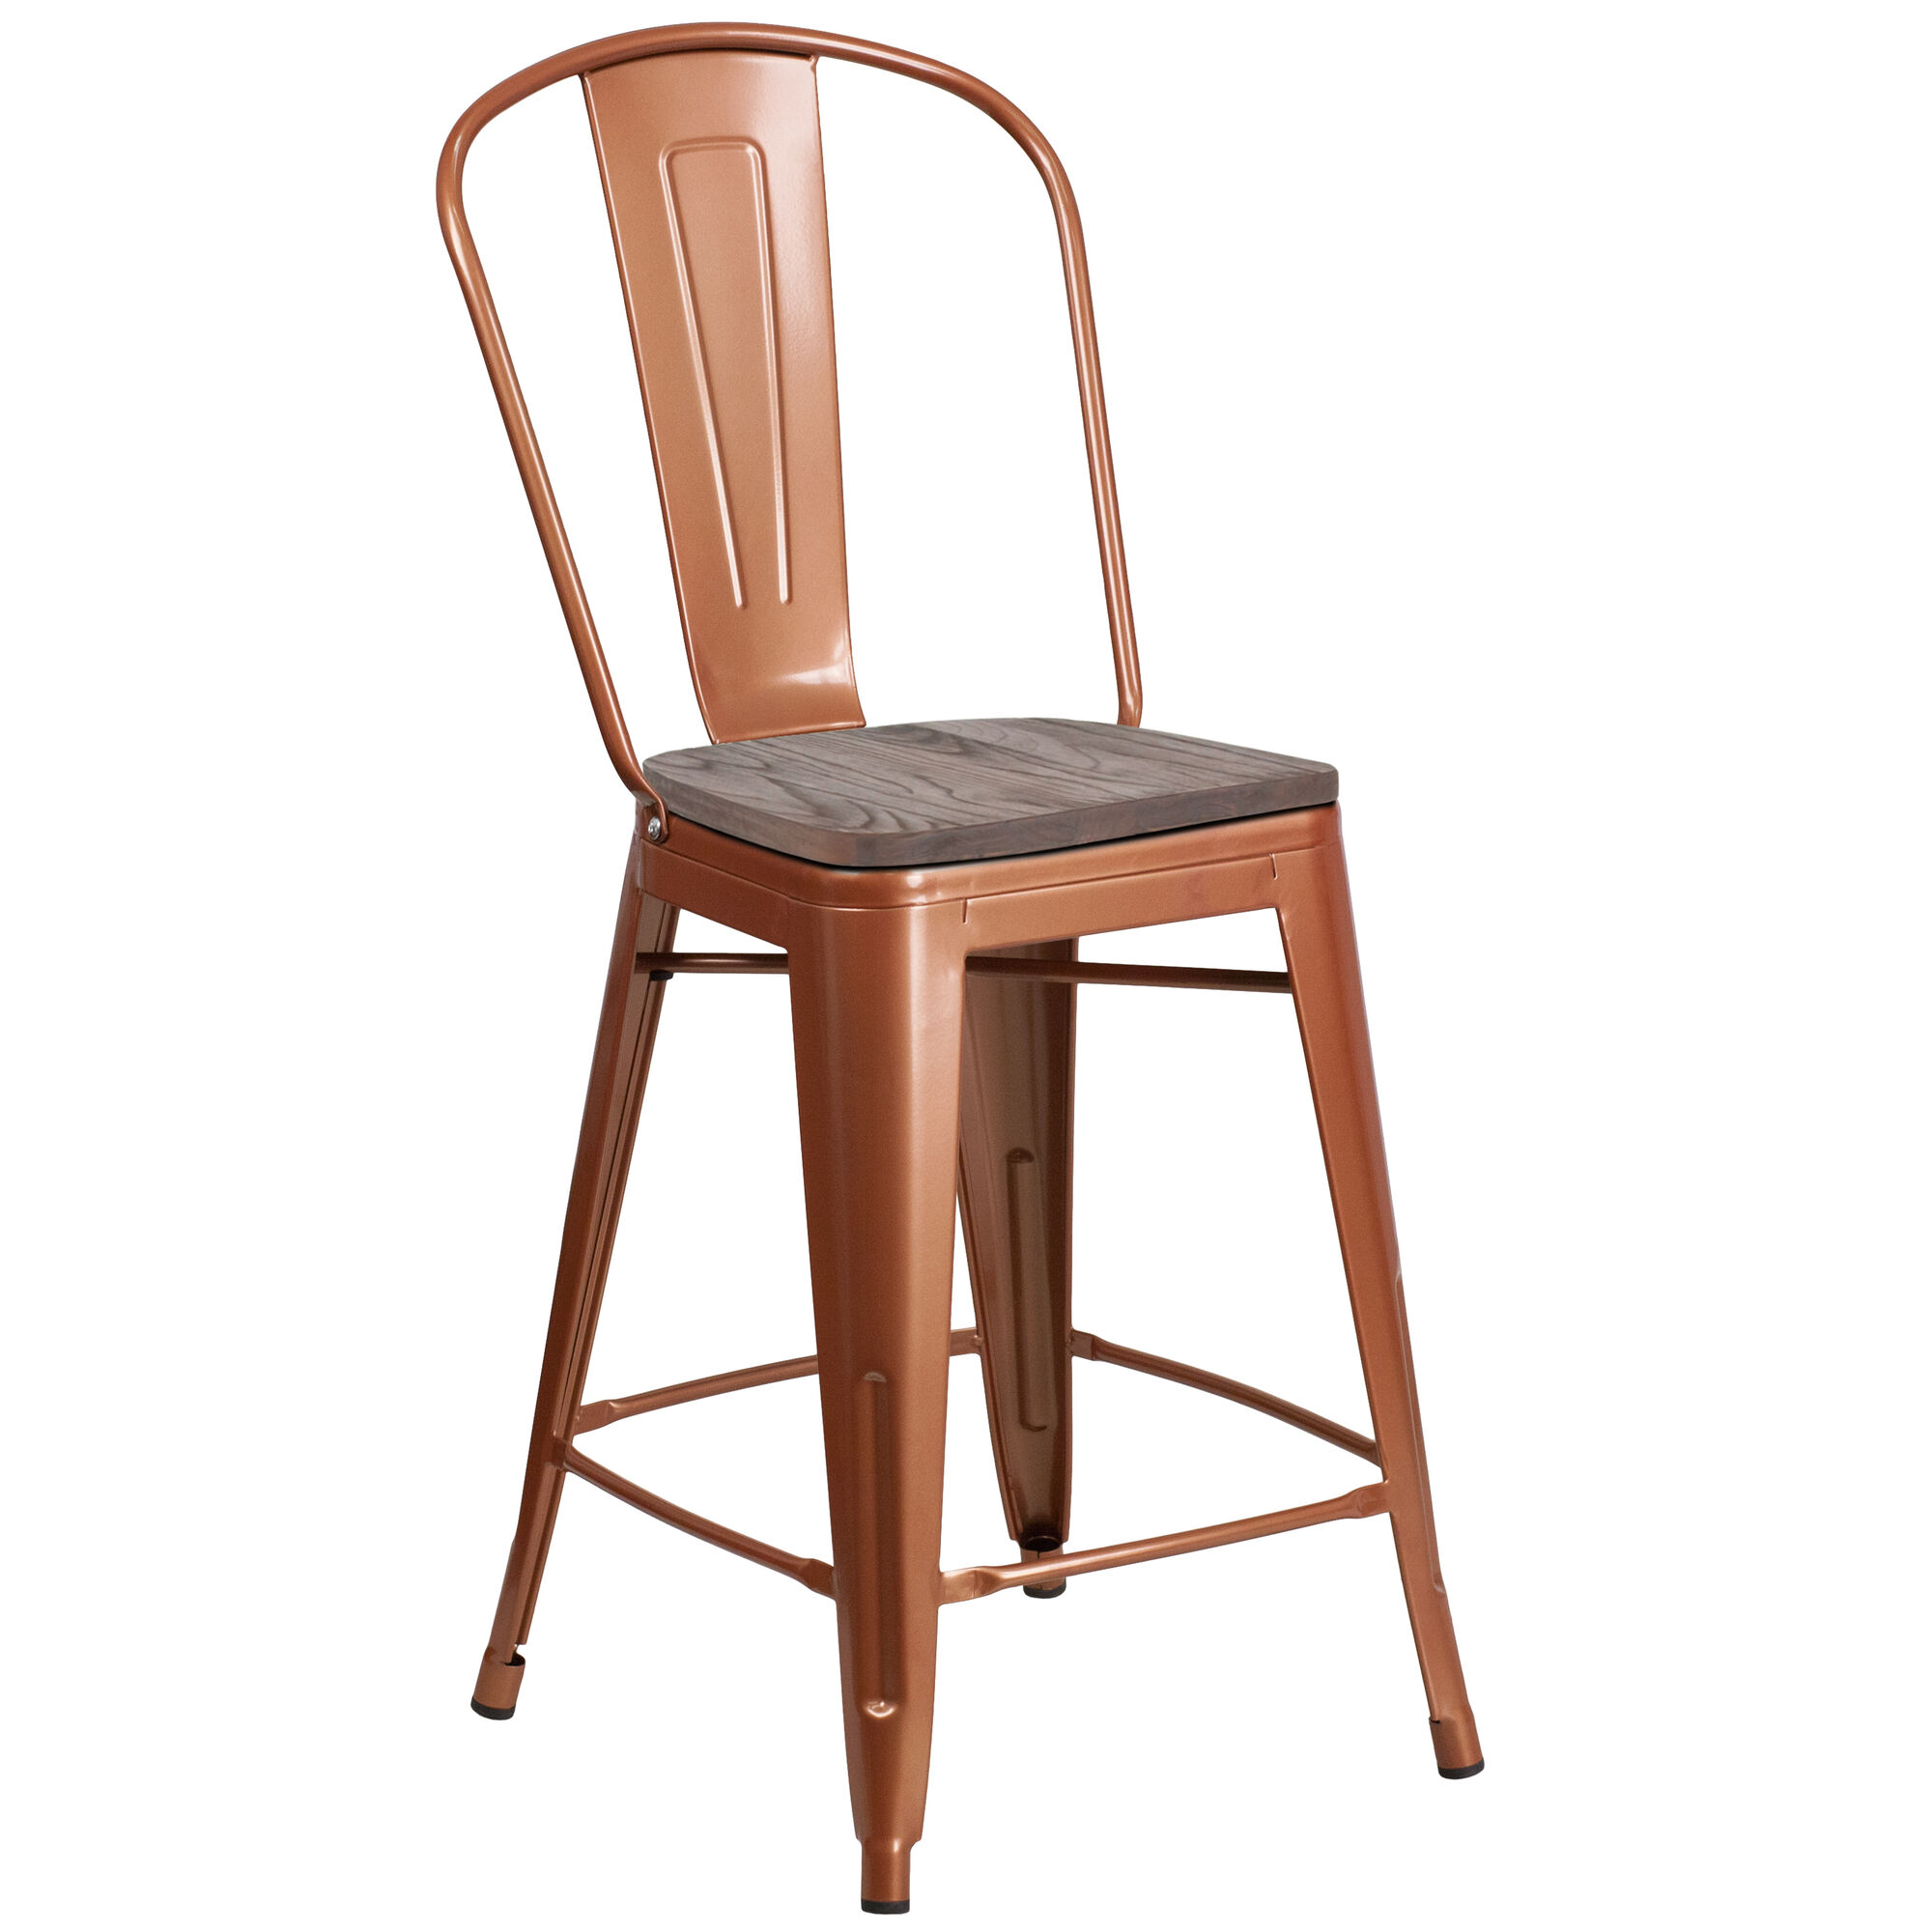 Incredible 24 High Copper Metal Counter Height Stool With Back And Wood Seat Pdpeps Interior Chair Design Pdpepsorg